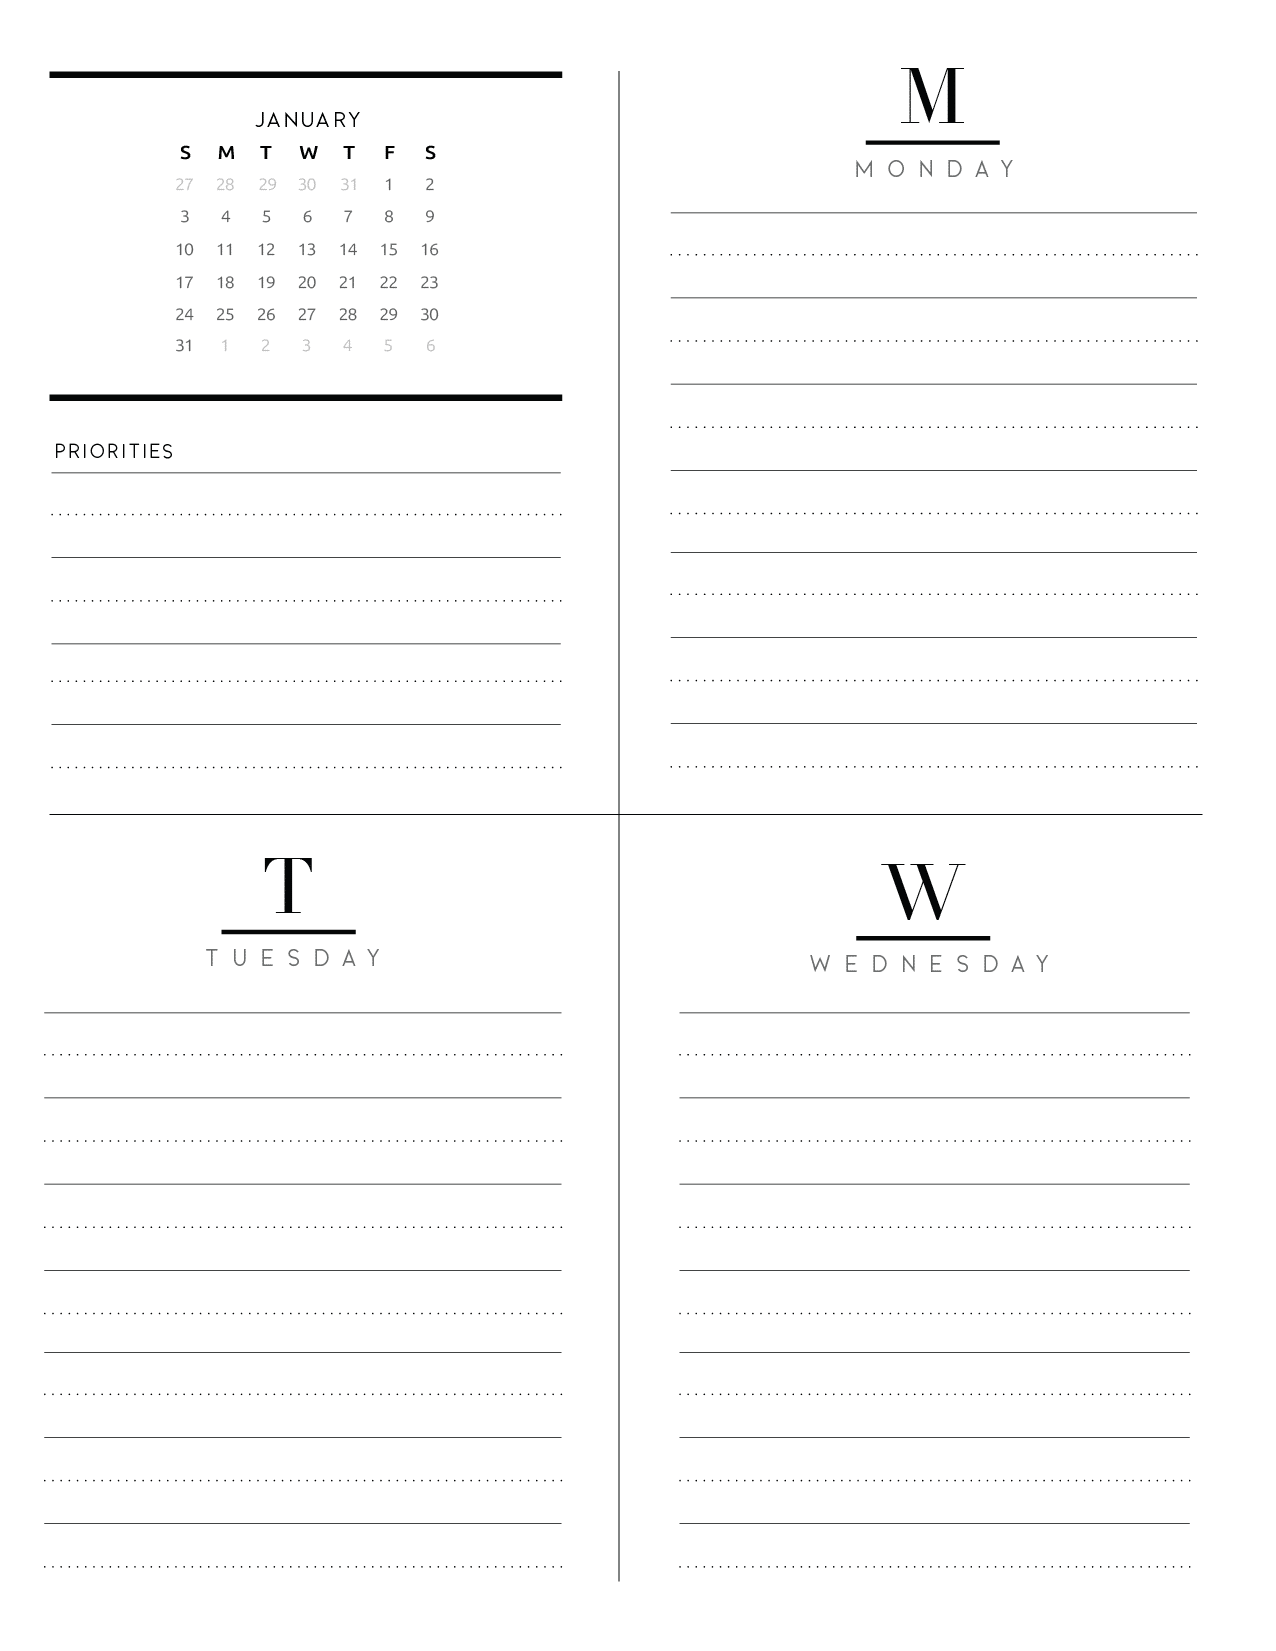 Weekly Planner Inserts On Two Pages In Formal Style-03